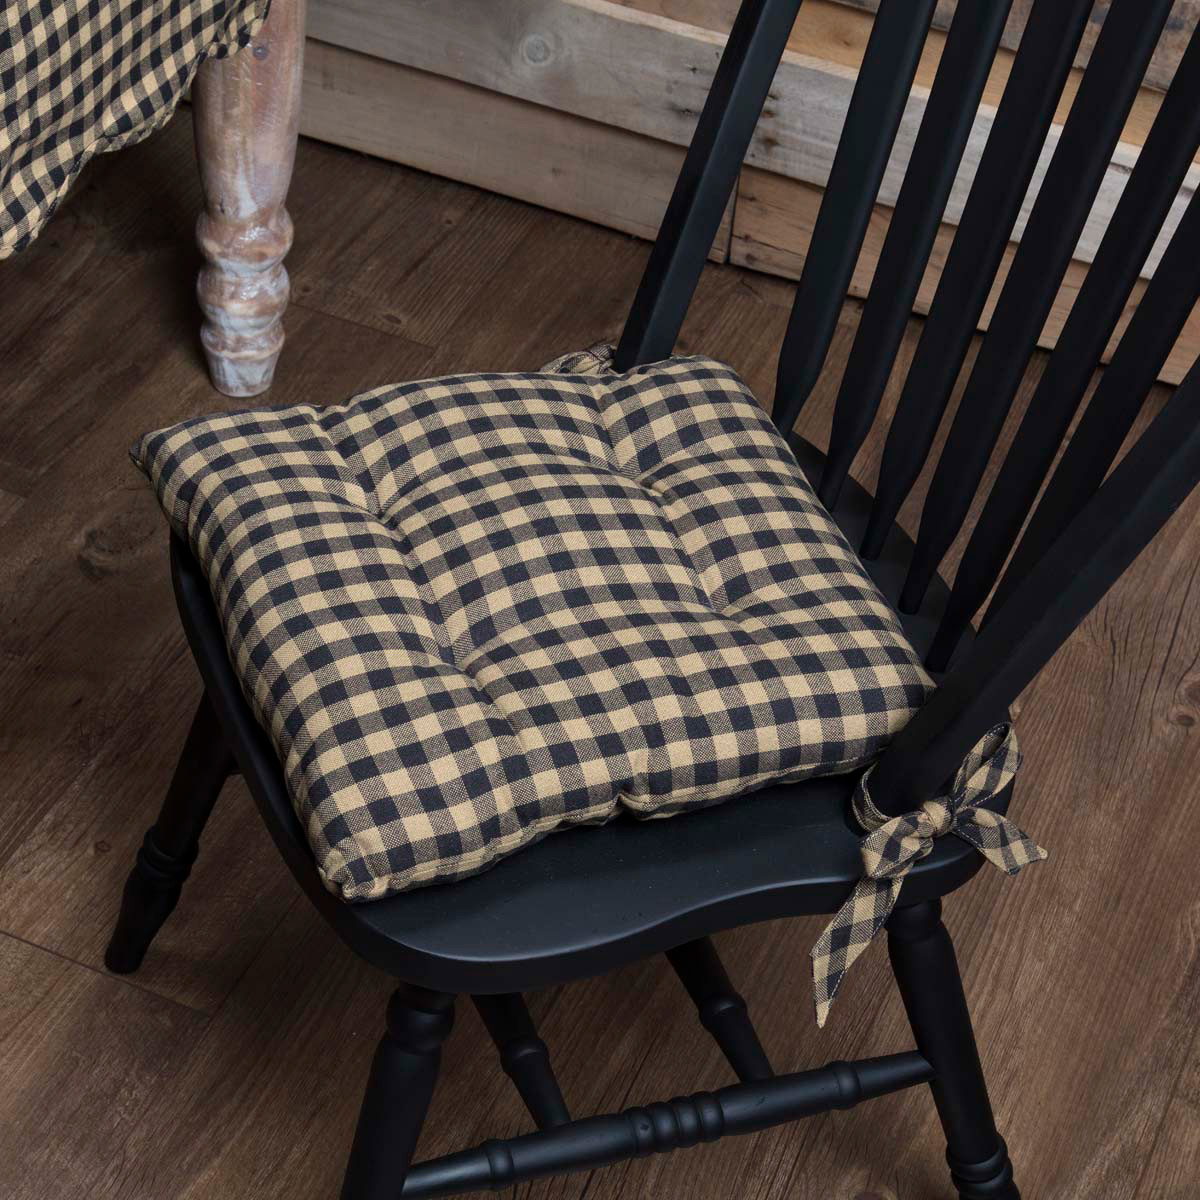 Ordinaire Black Check Chair Pad (Black And Tan)